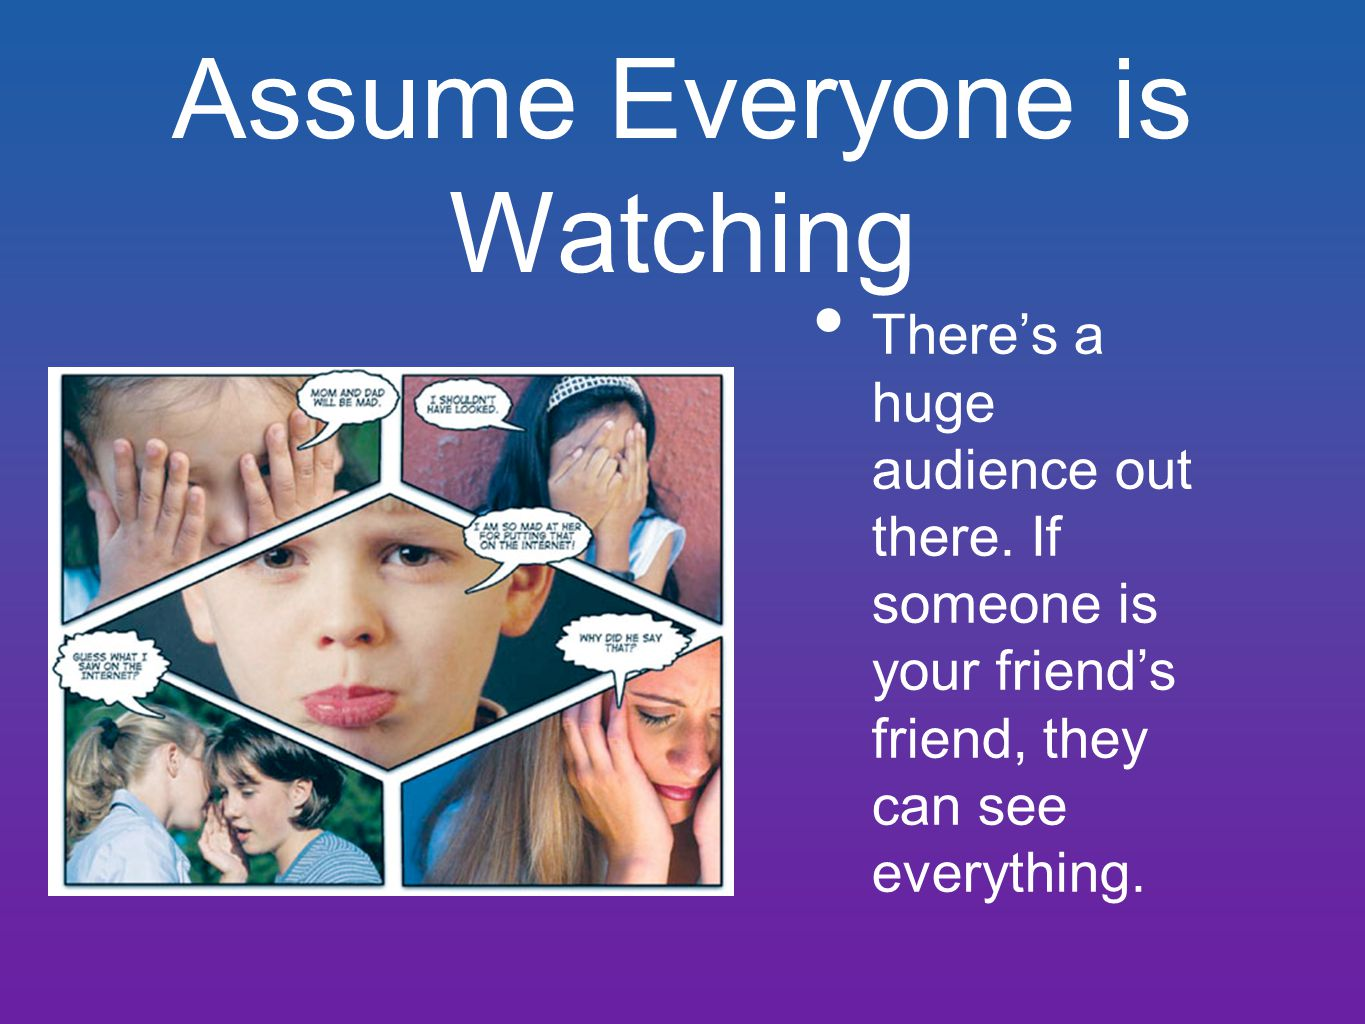 Assume Everyone is Watching There's a huge audience out there. If someone is your friend's friend, they can see everything.